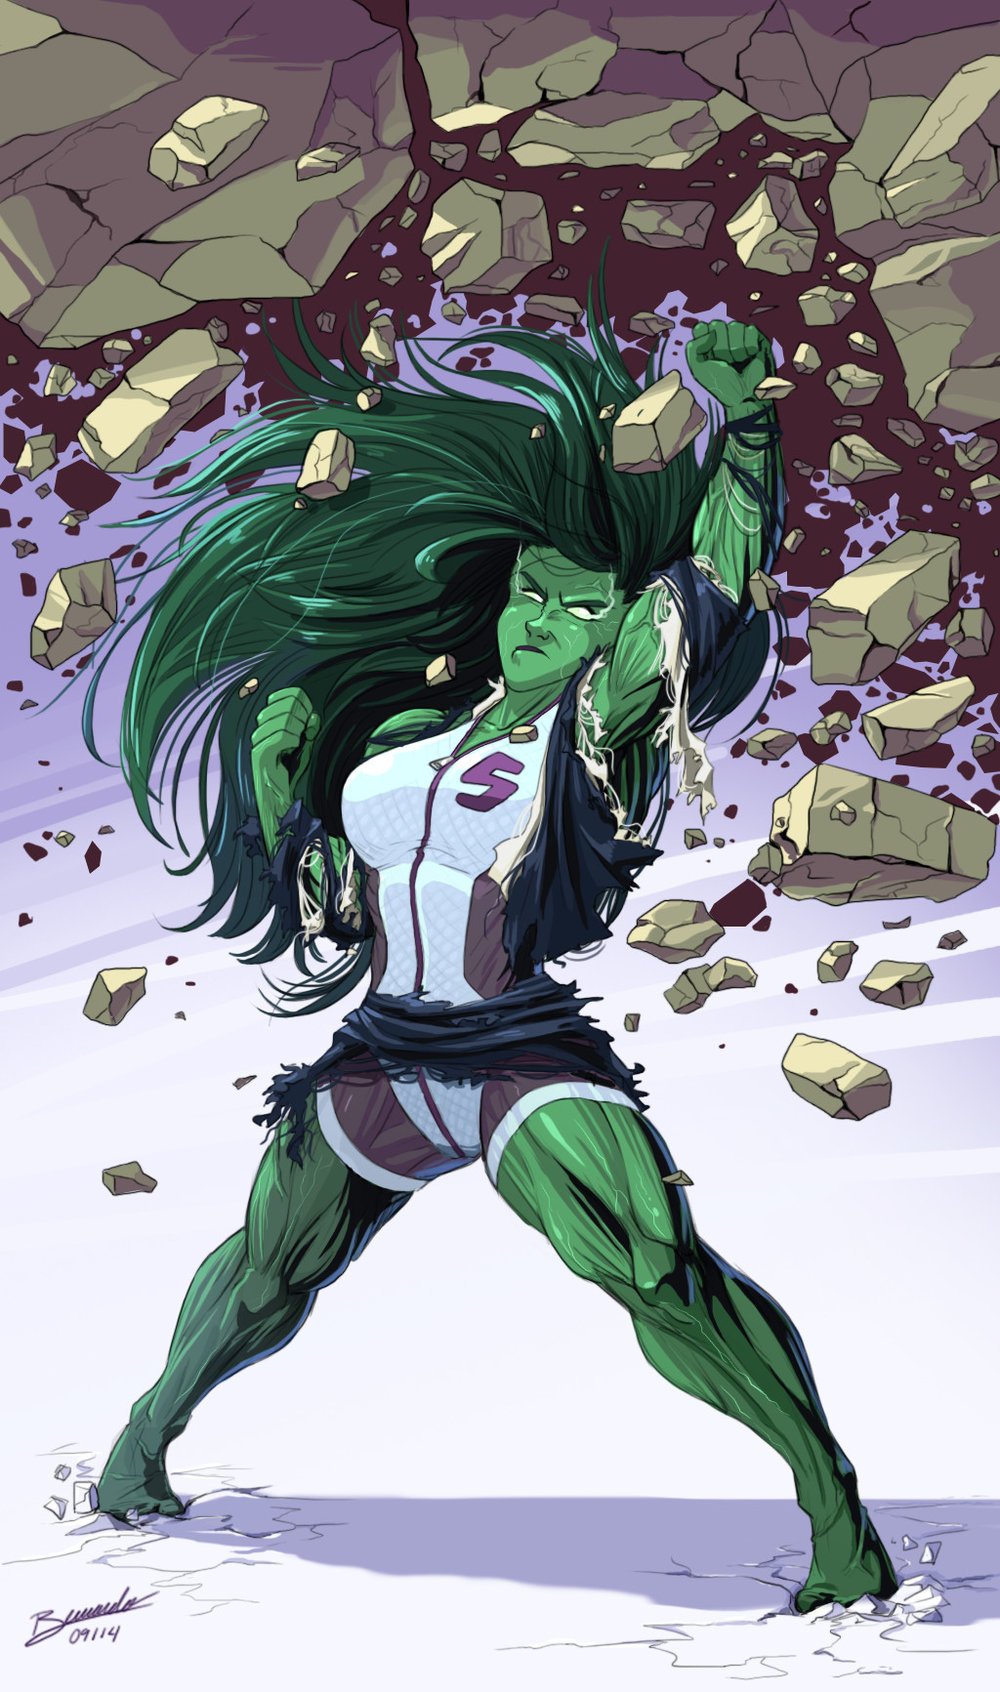 bernardo-curvello-she-hulk-final.jpg